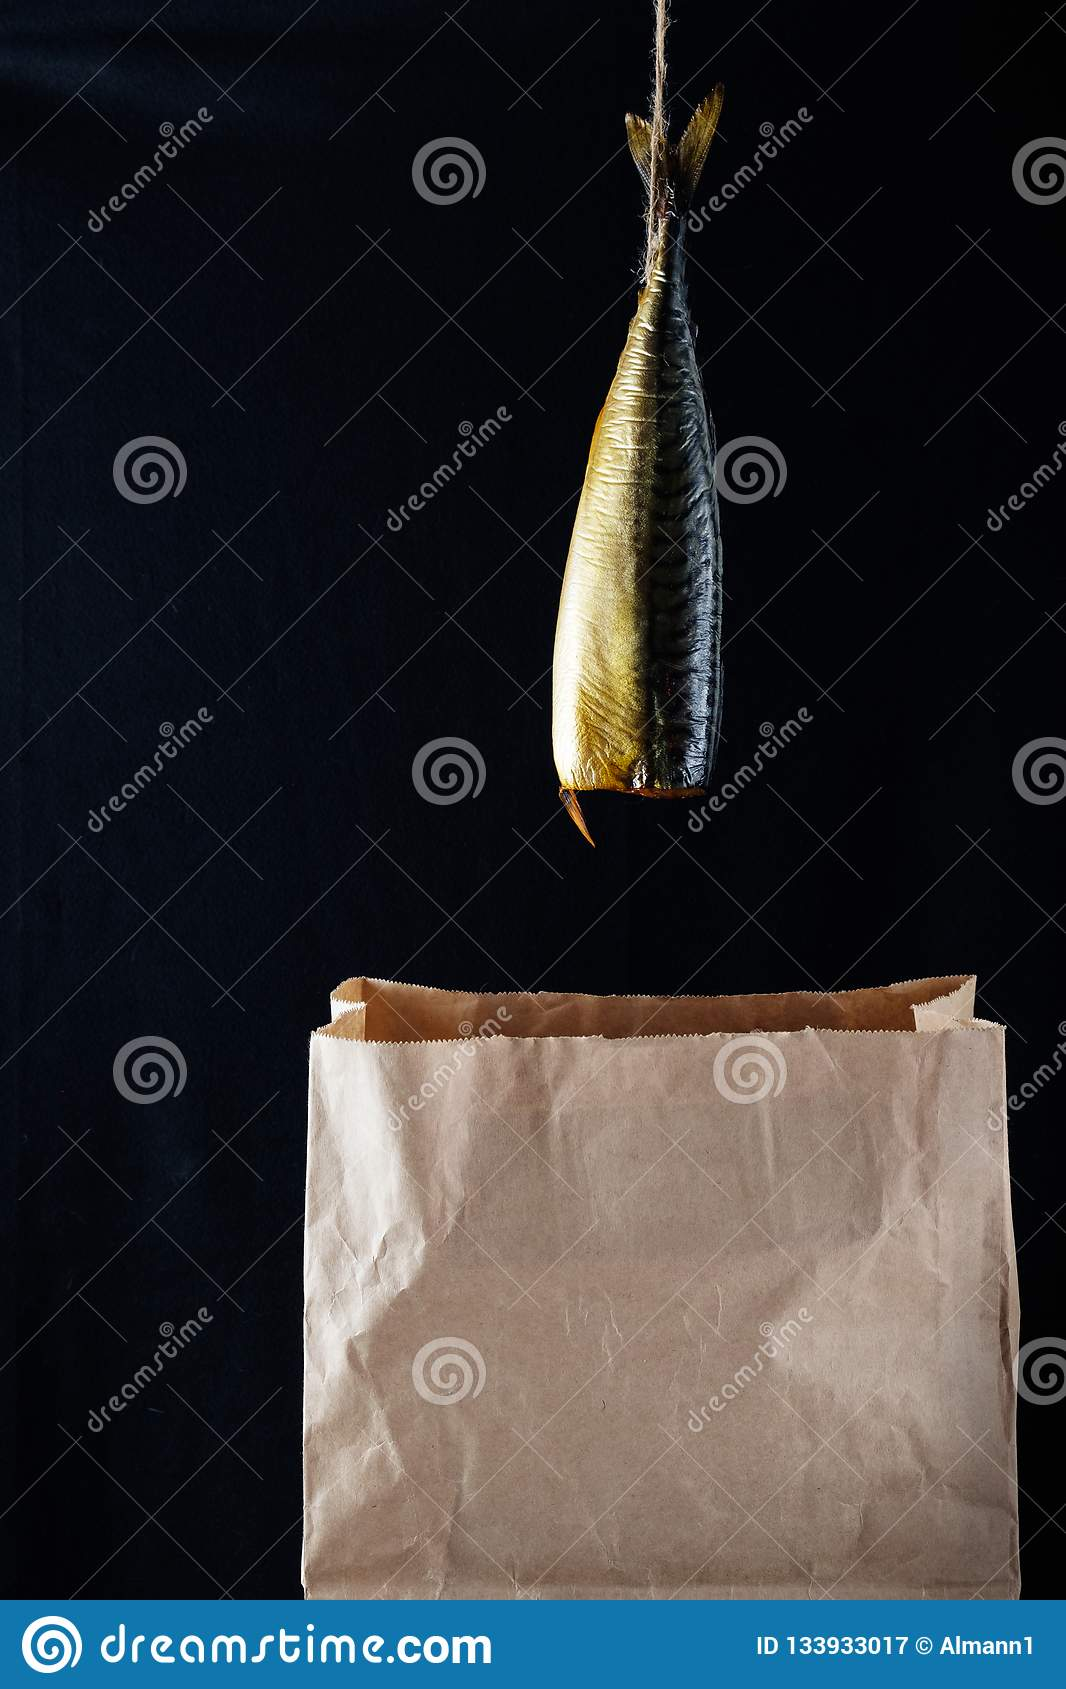 Smoked fish mackerel on the paper bag in the black wooden background